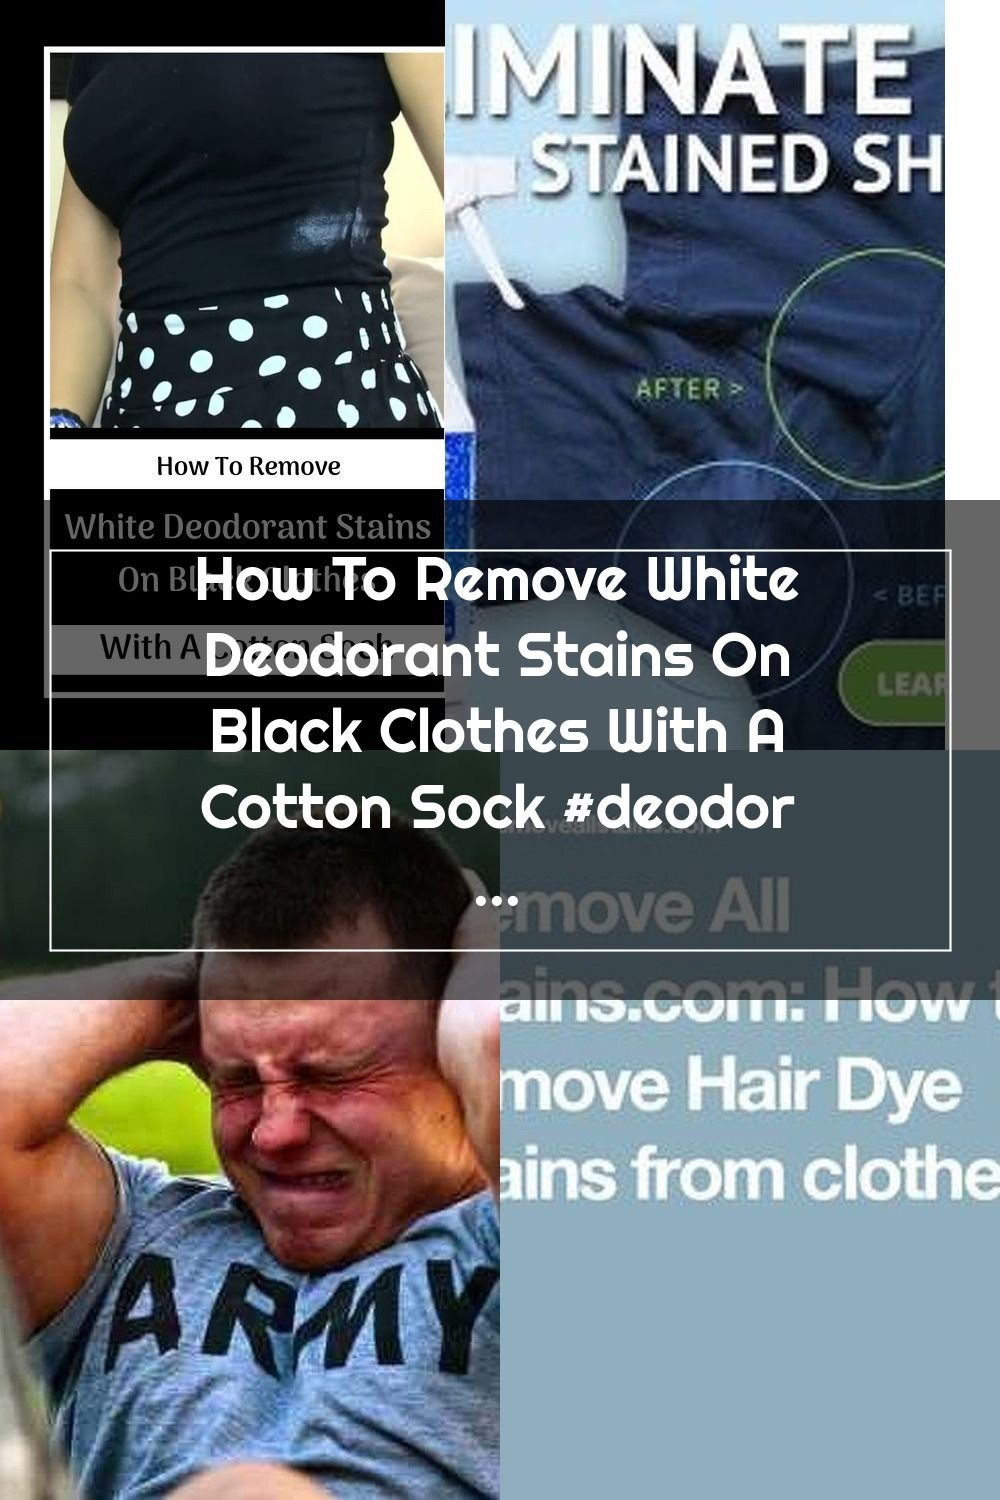 How To Remove White Deodorant Stains On Black Clothes With A Cotton Sock Deodorant Stains Stain Removal In 2020 Deodorant Stains Remove Deodorant Stains Deodorant